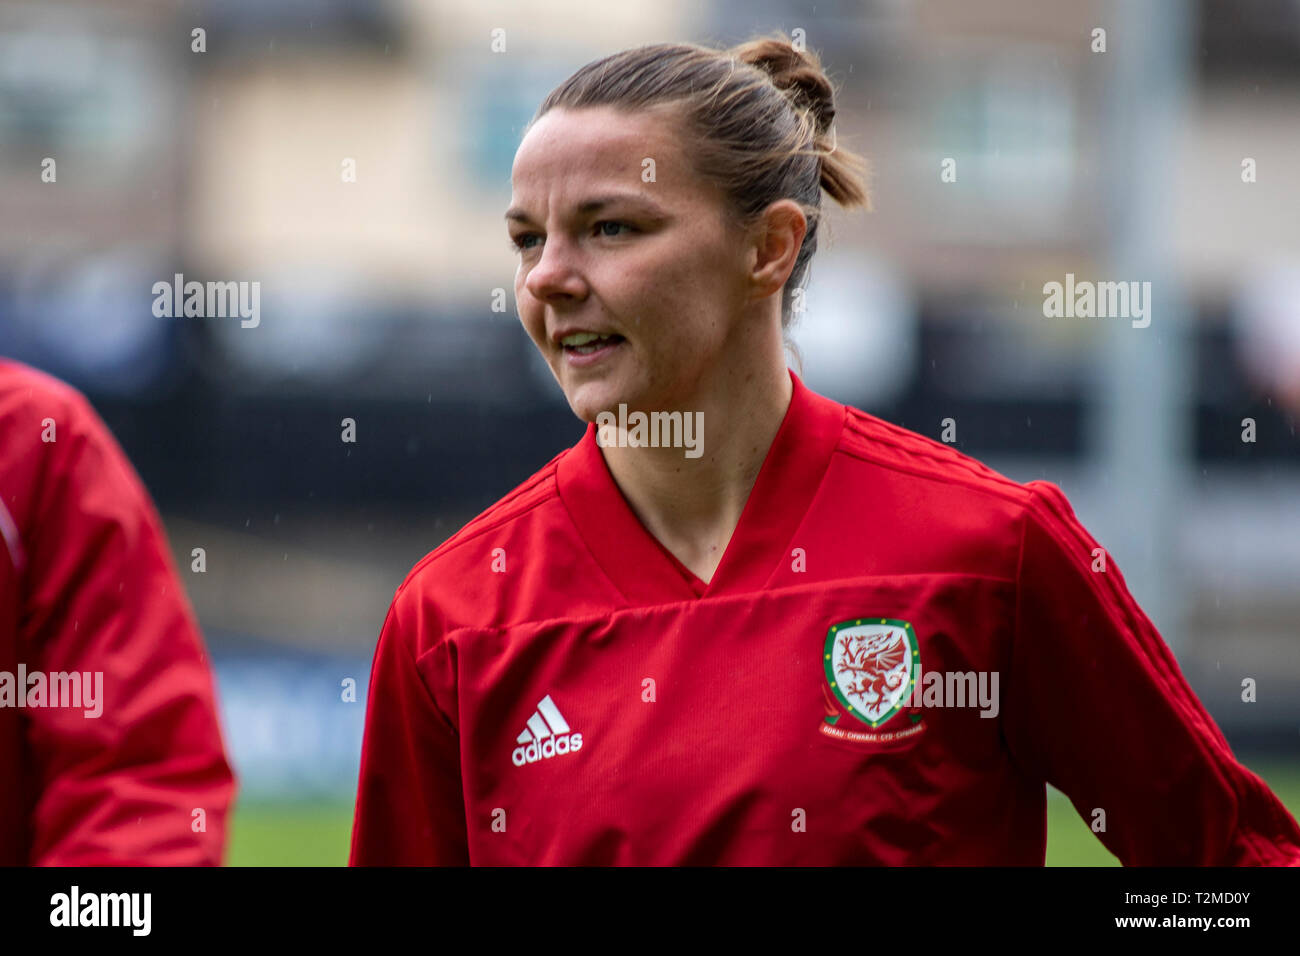 Loren Dykes of Wales trains at Rodney Parade ahead of the Wales v Czech Republic International Friendly. Stock Photo